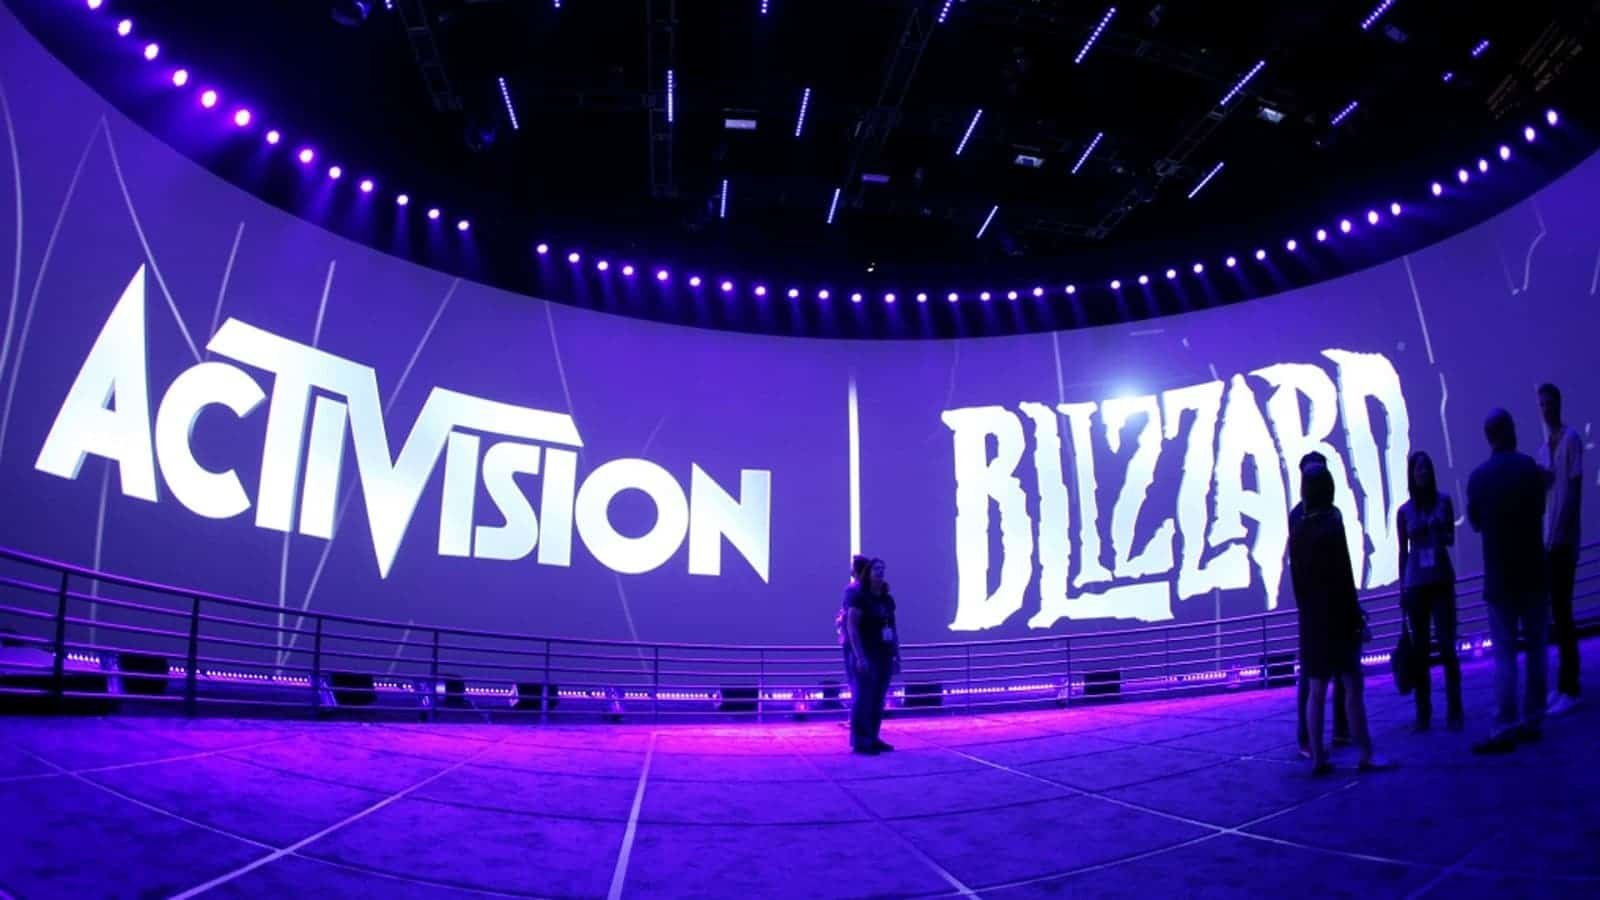 blizzard and activision logos